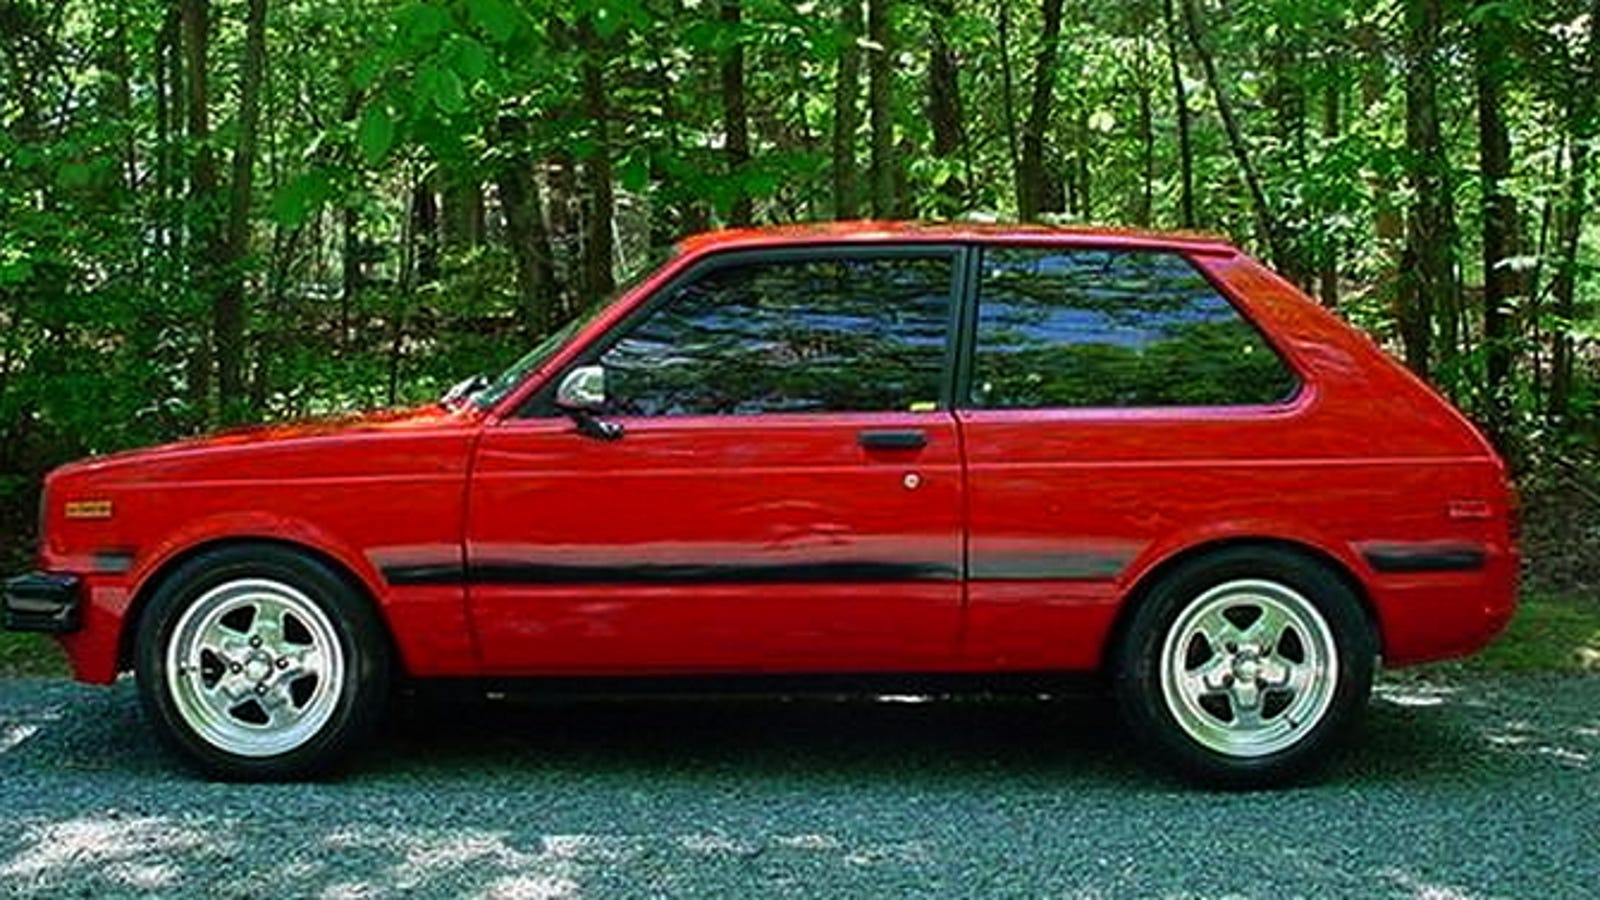 For 7 500 This Rotary Powered 1981 Toyota Starlet Is Your Red Dwarf